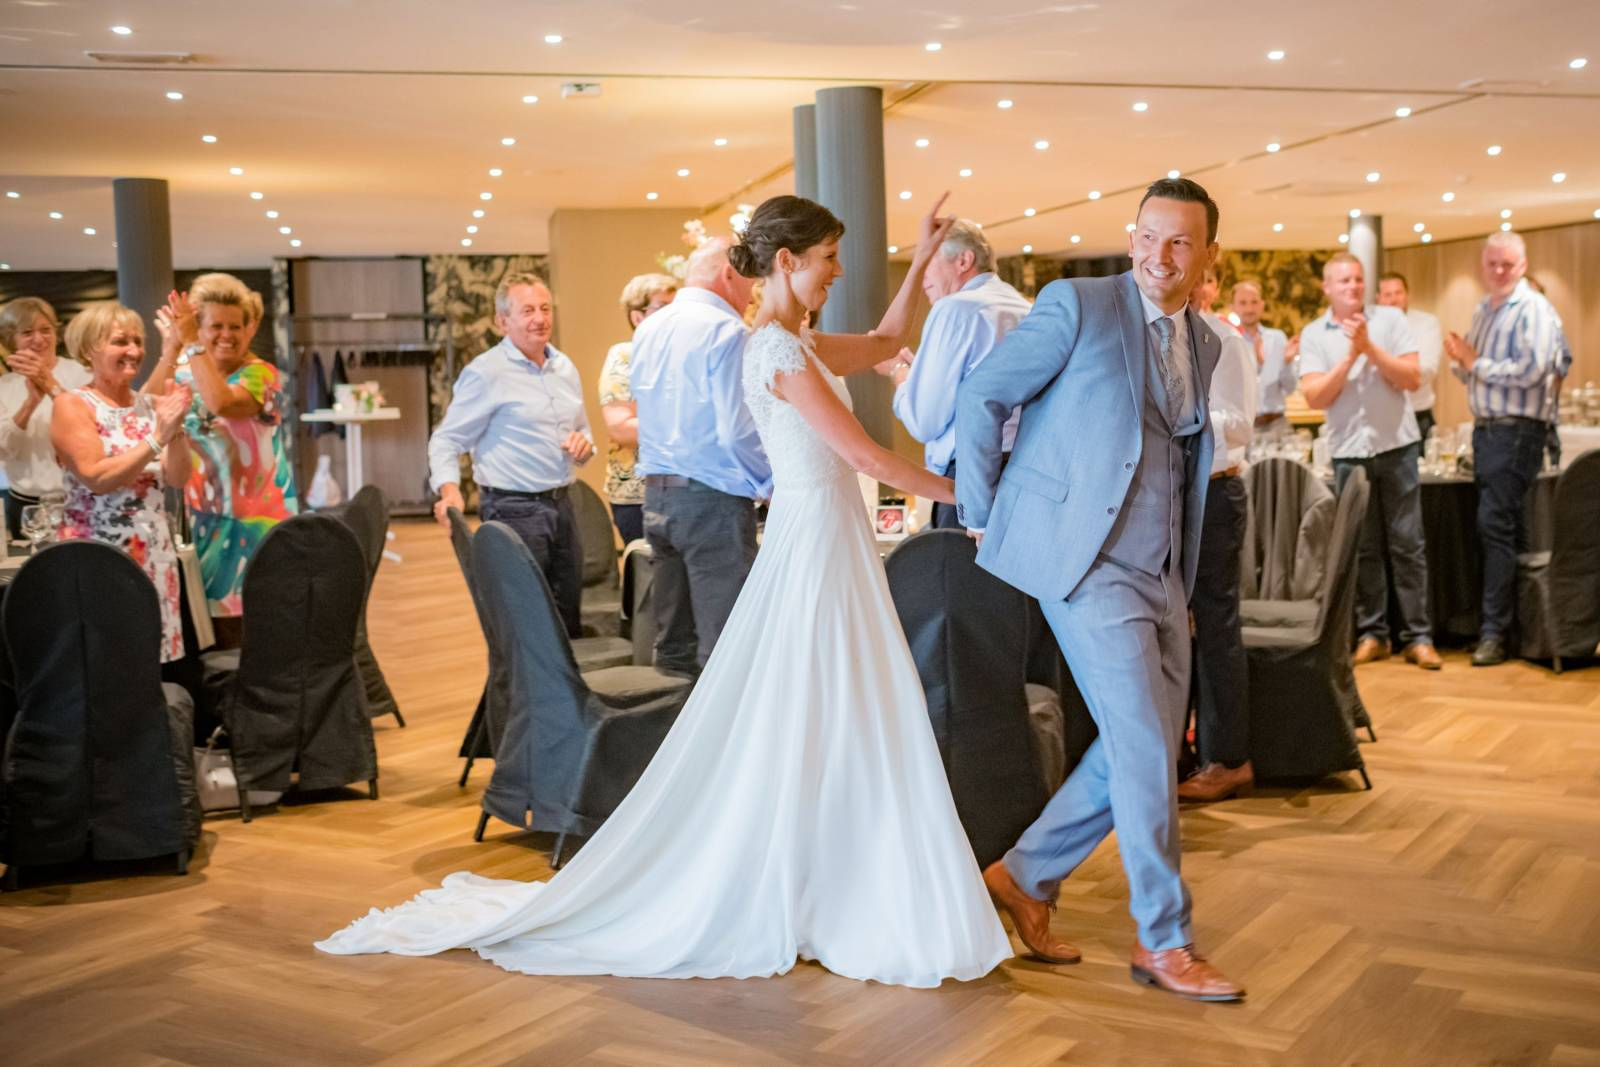 Van der Valk hotel Beveren - Feestzaal - Trouwzaal - House of Weddings - 12